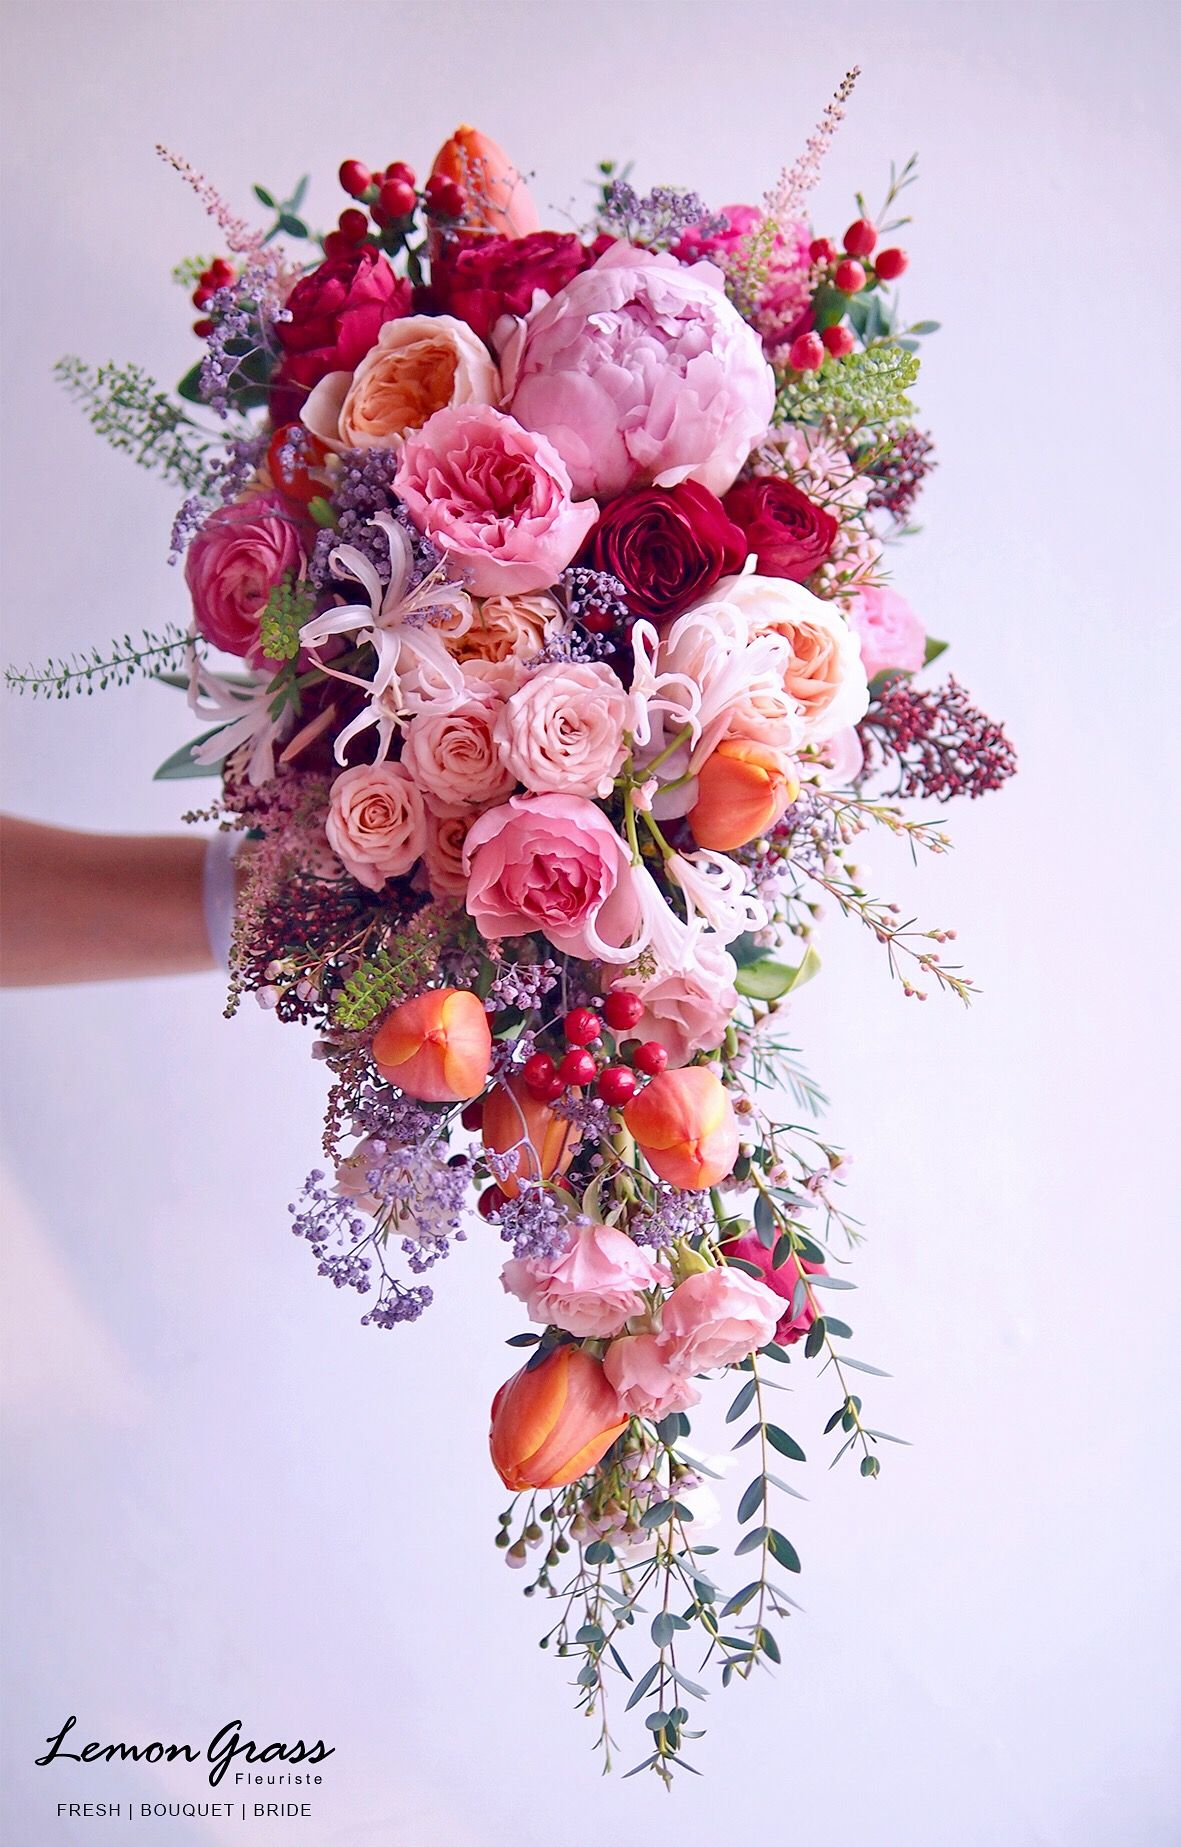 Wedding bouquets not flowers  Pin by Annabelle Lefebvre on mariage  Pinterest  Flowers Flower